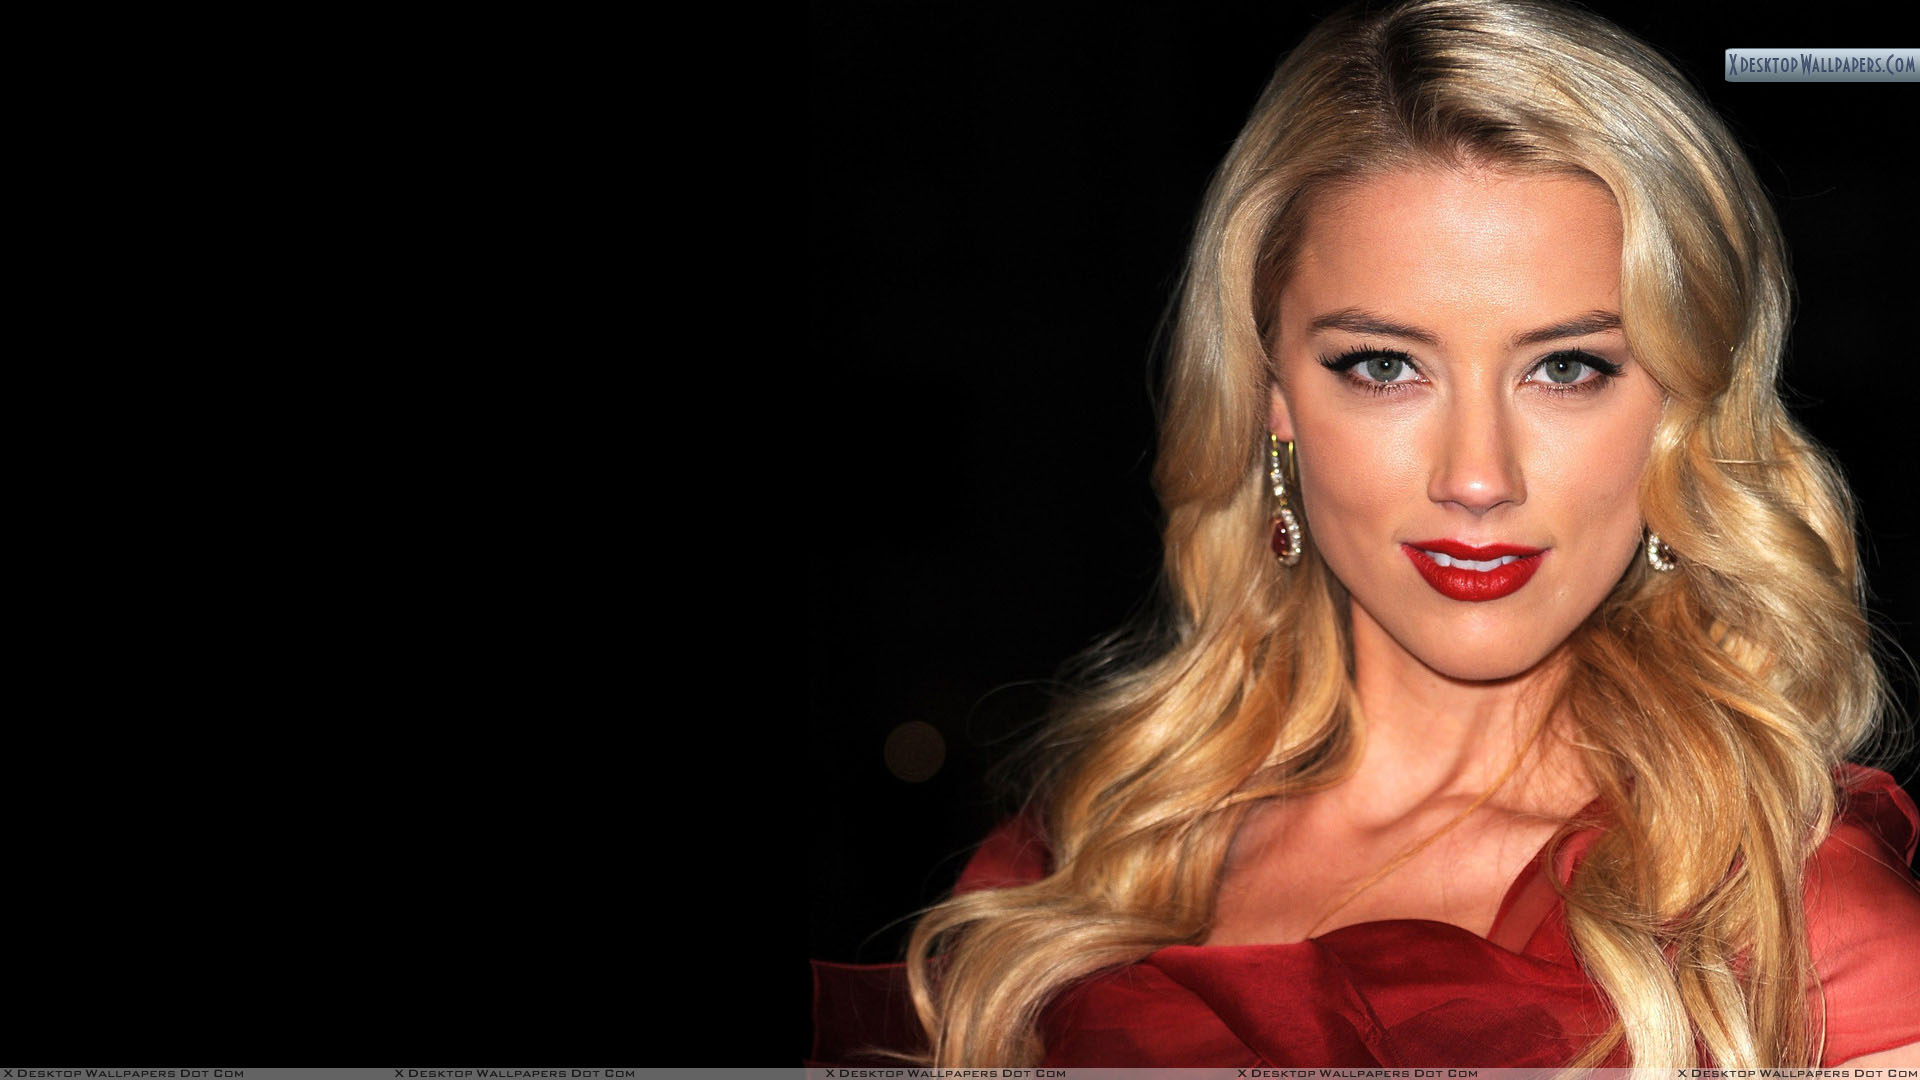 amber heard smiling in red lips and black background wallpaper